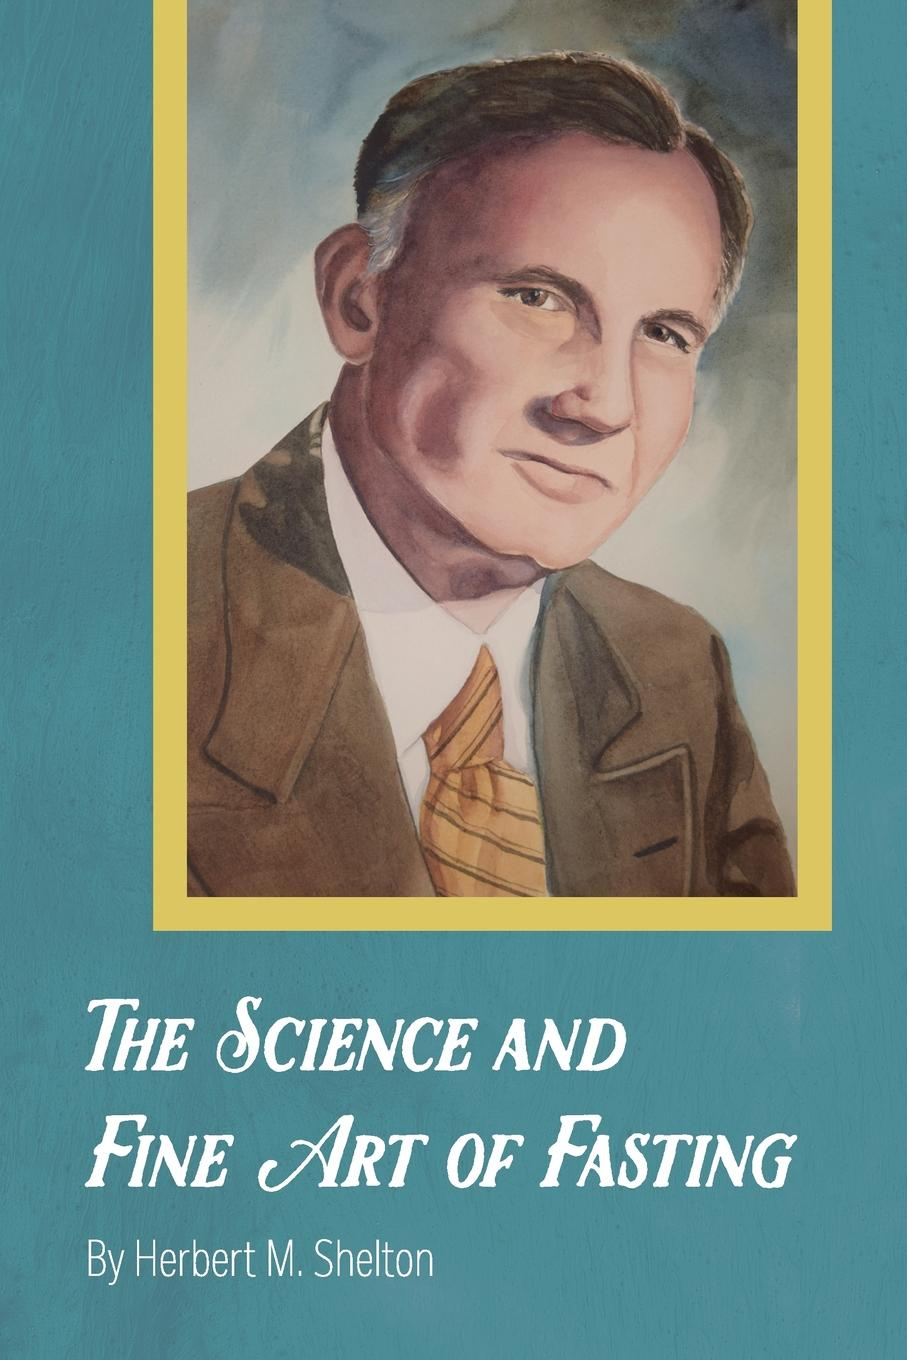 Herbert M. Shelton The Science and Fine Art of Fasting